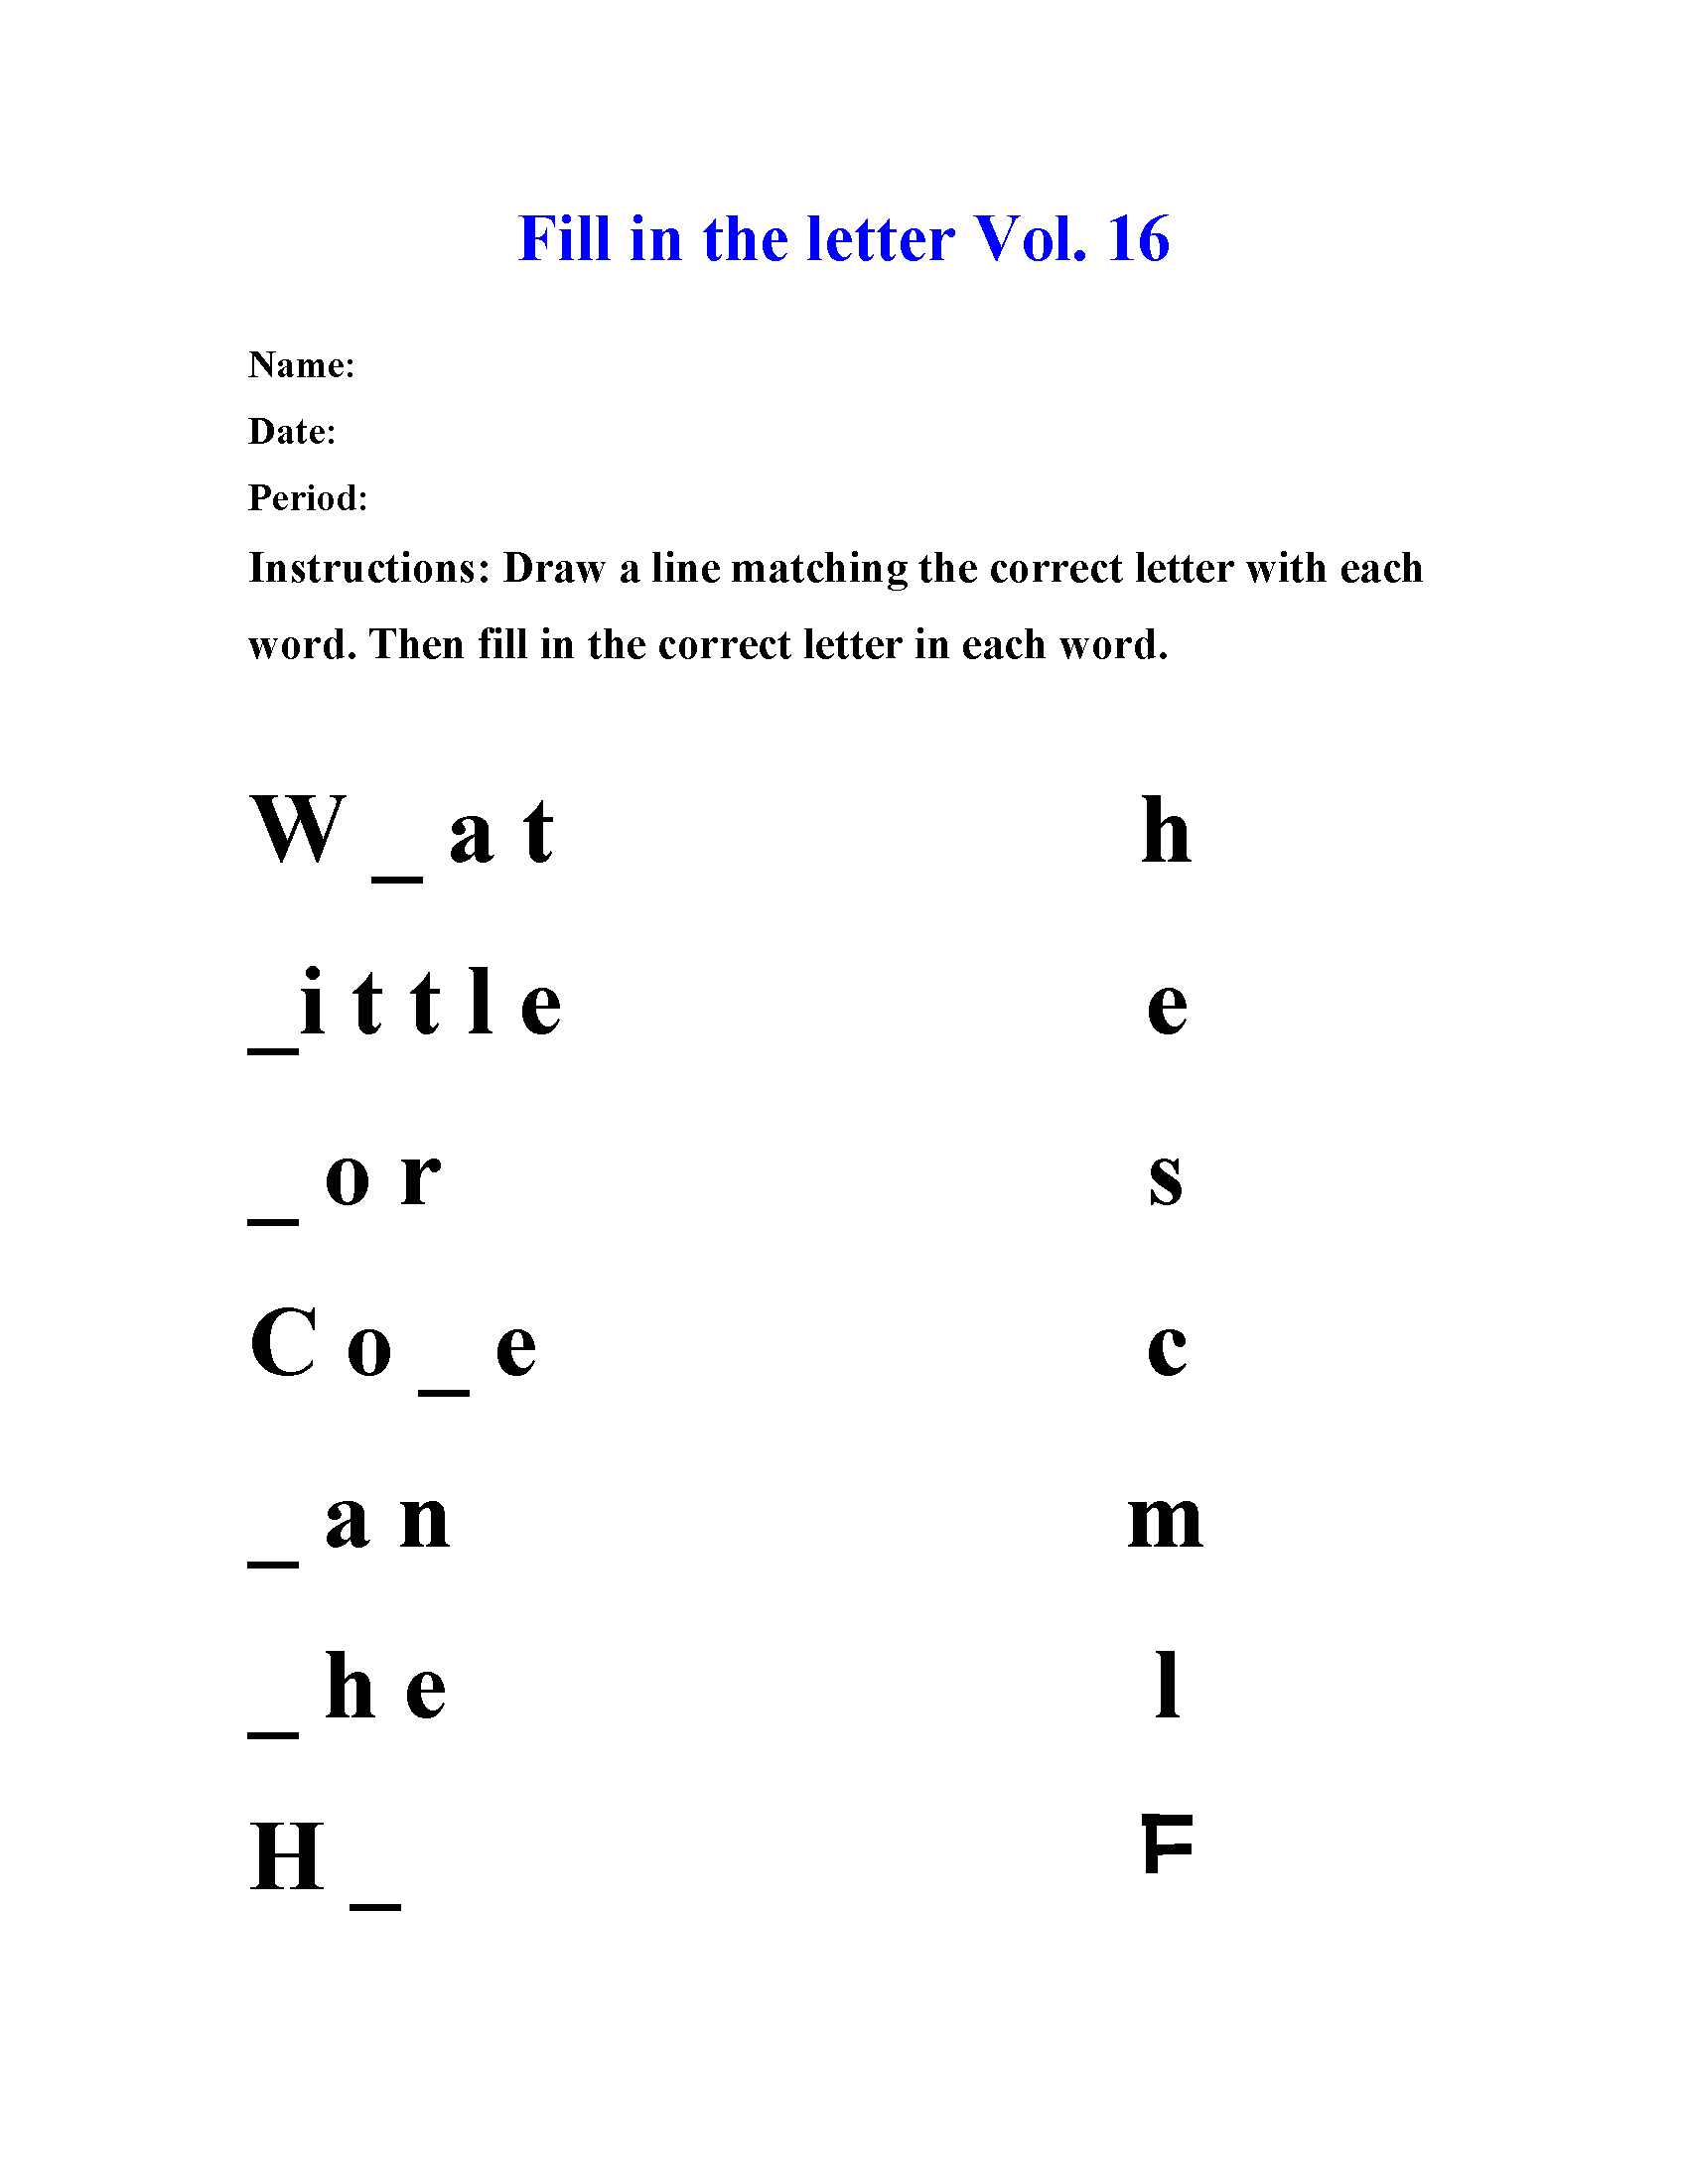 Fill in the letter Vol 16